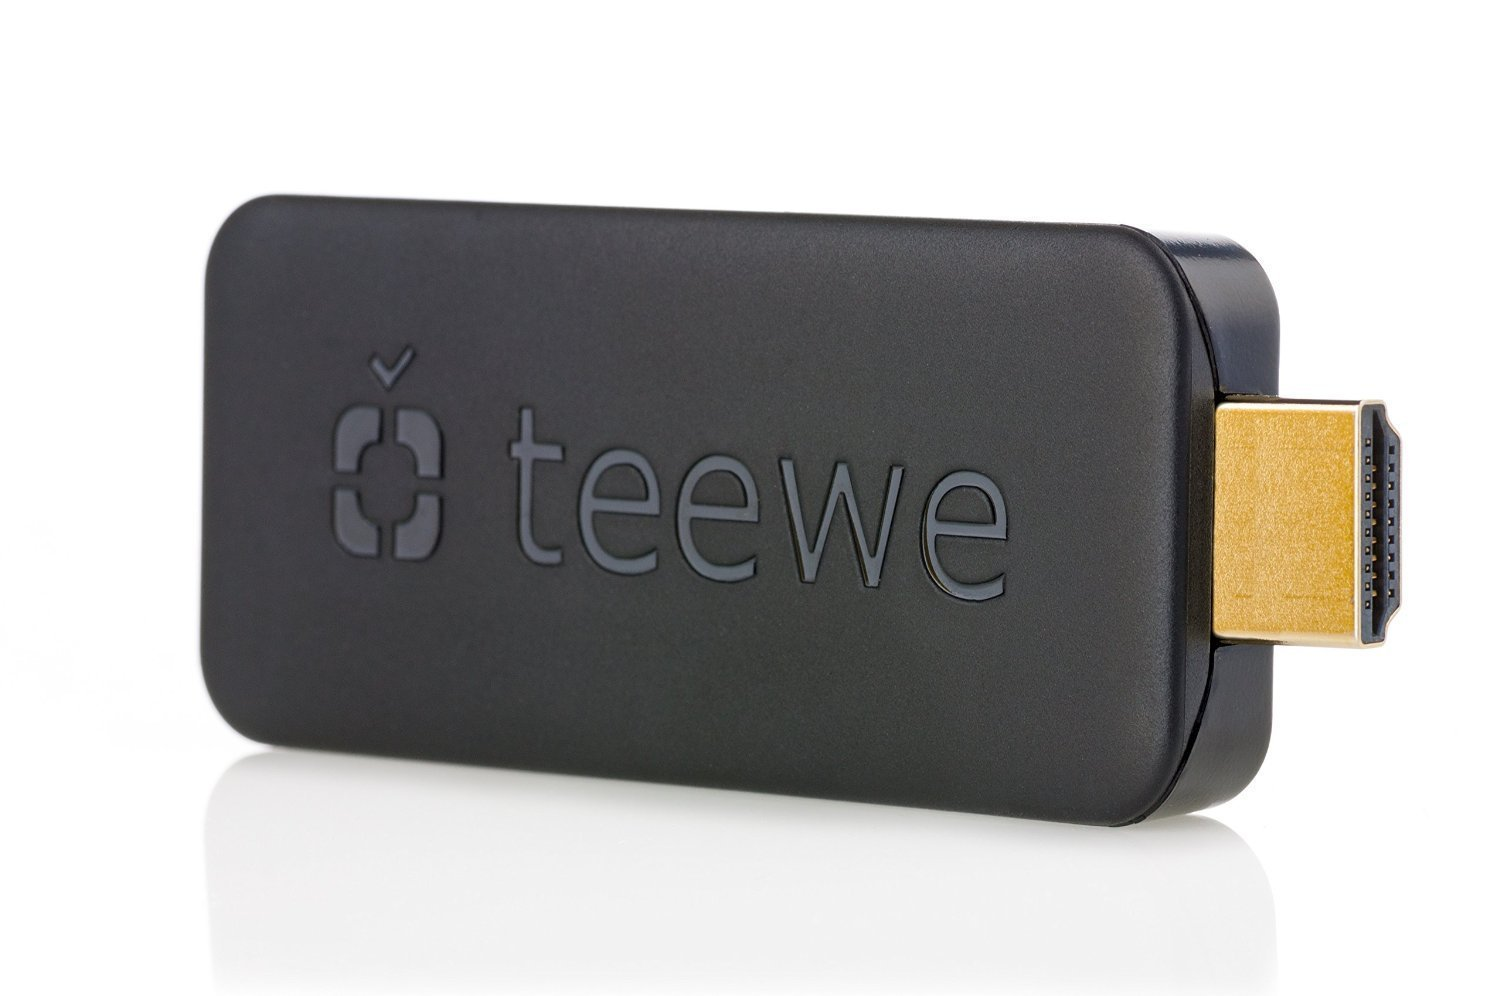 Teewe 2 Wireless HDMI Media Streaming Player for Rs 1799 (25% off)